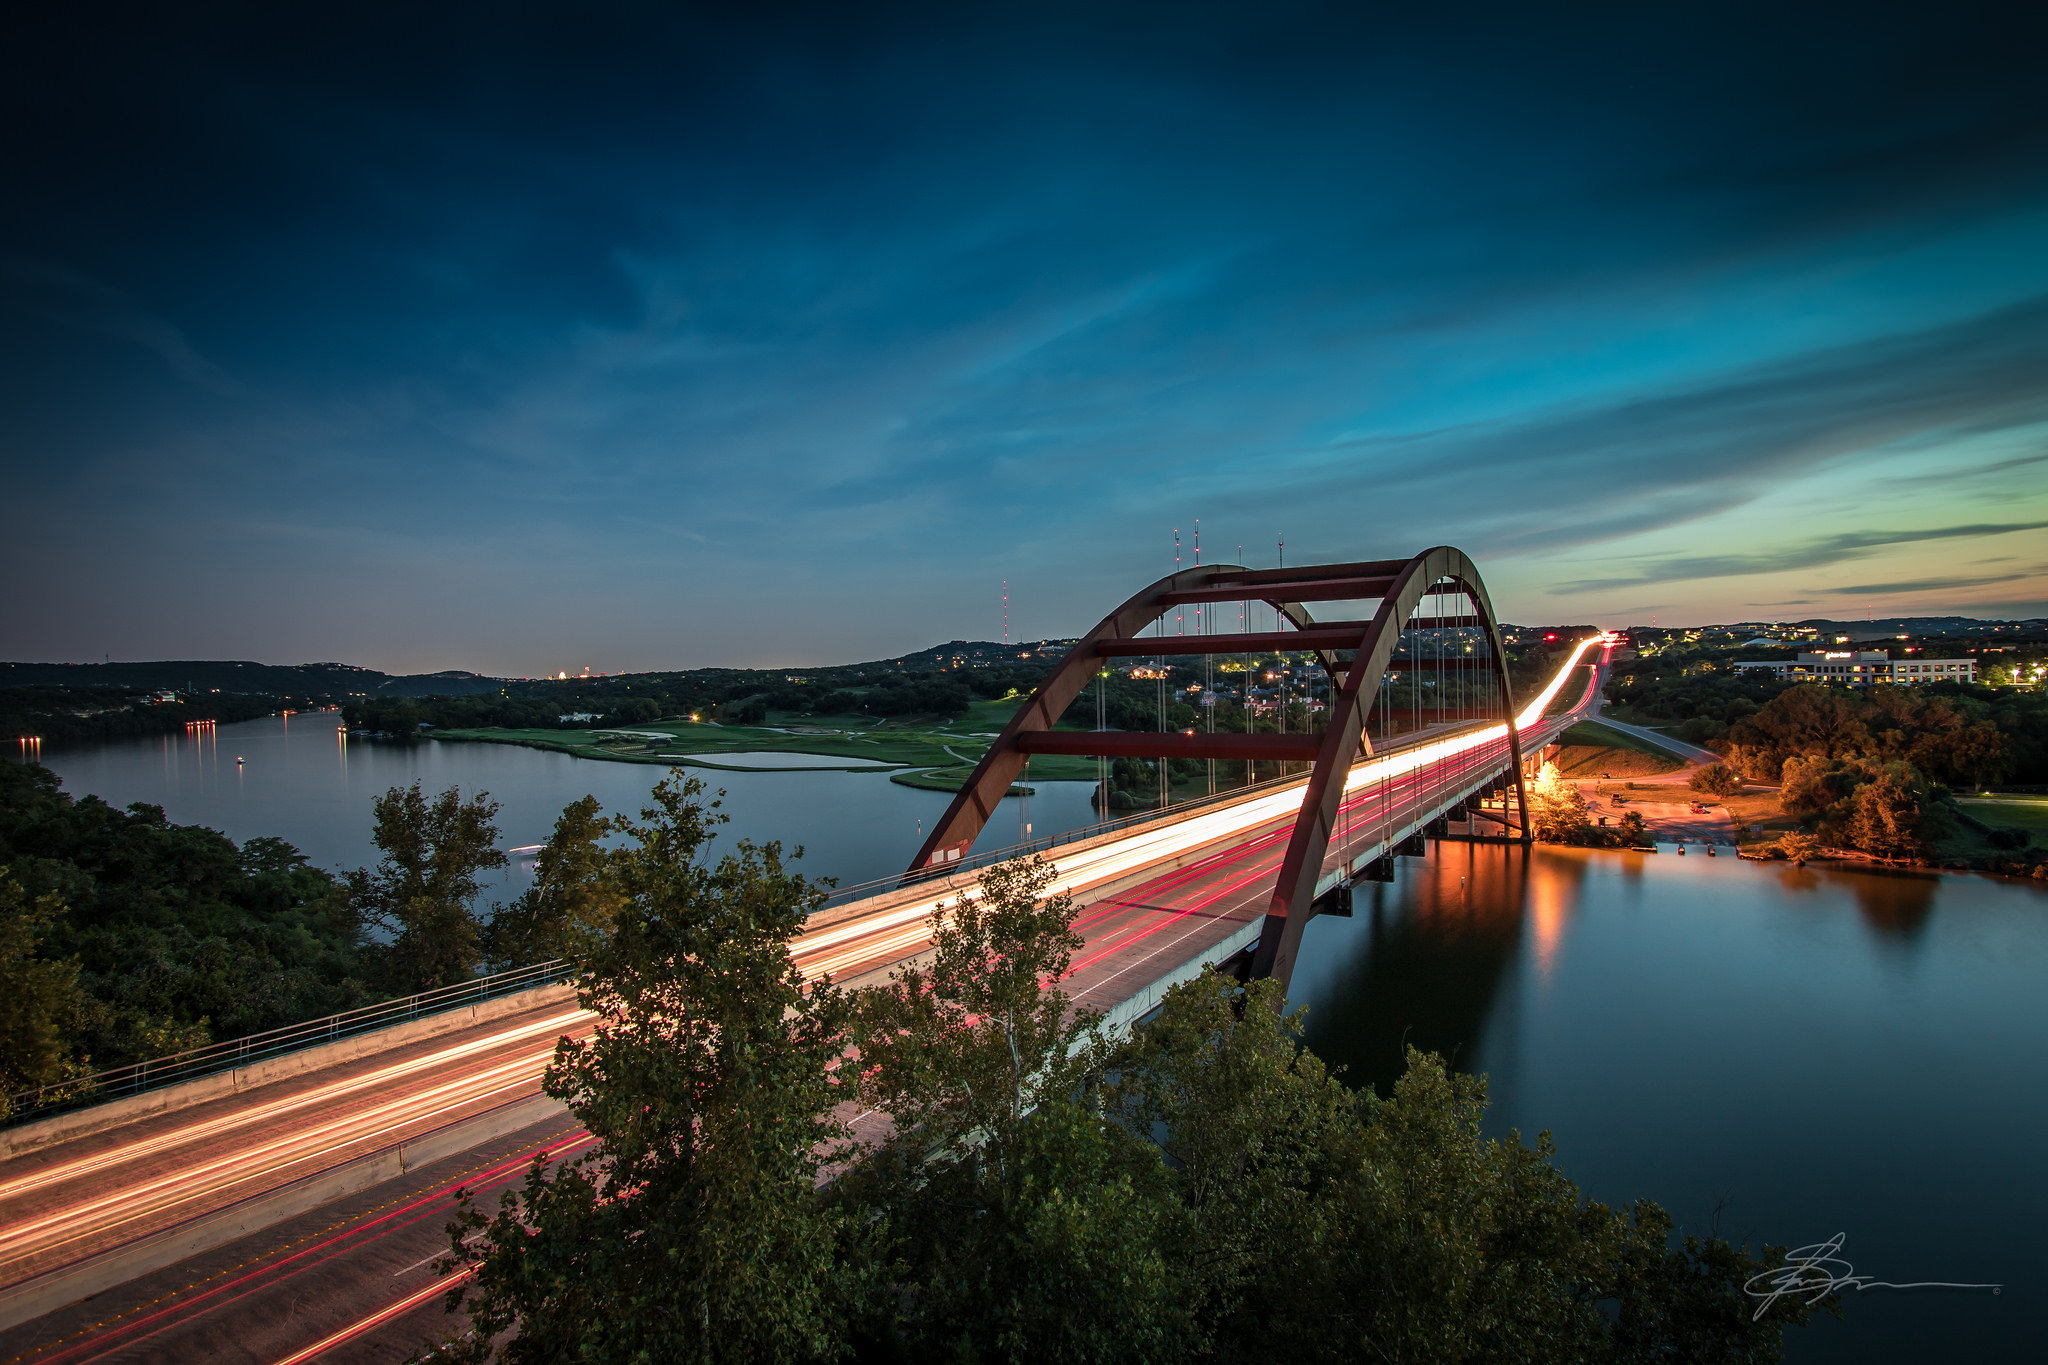 Austin-Texas-Bridge-by-Red-Photography-www-RedPhoto-com-wallpaper-wpc5802372